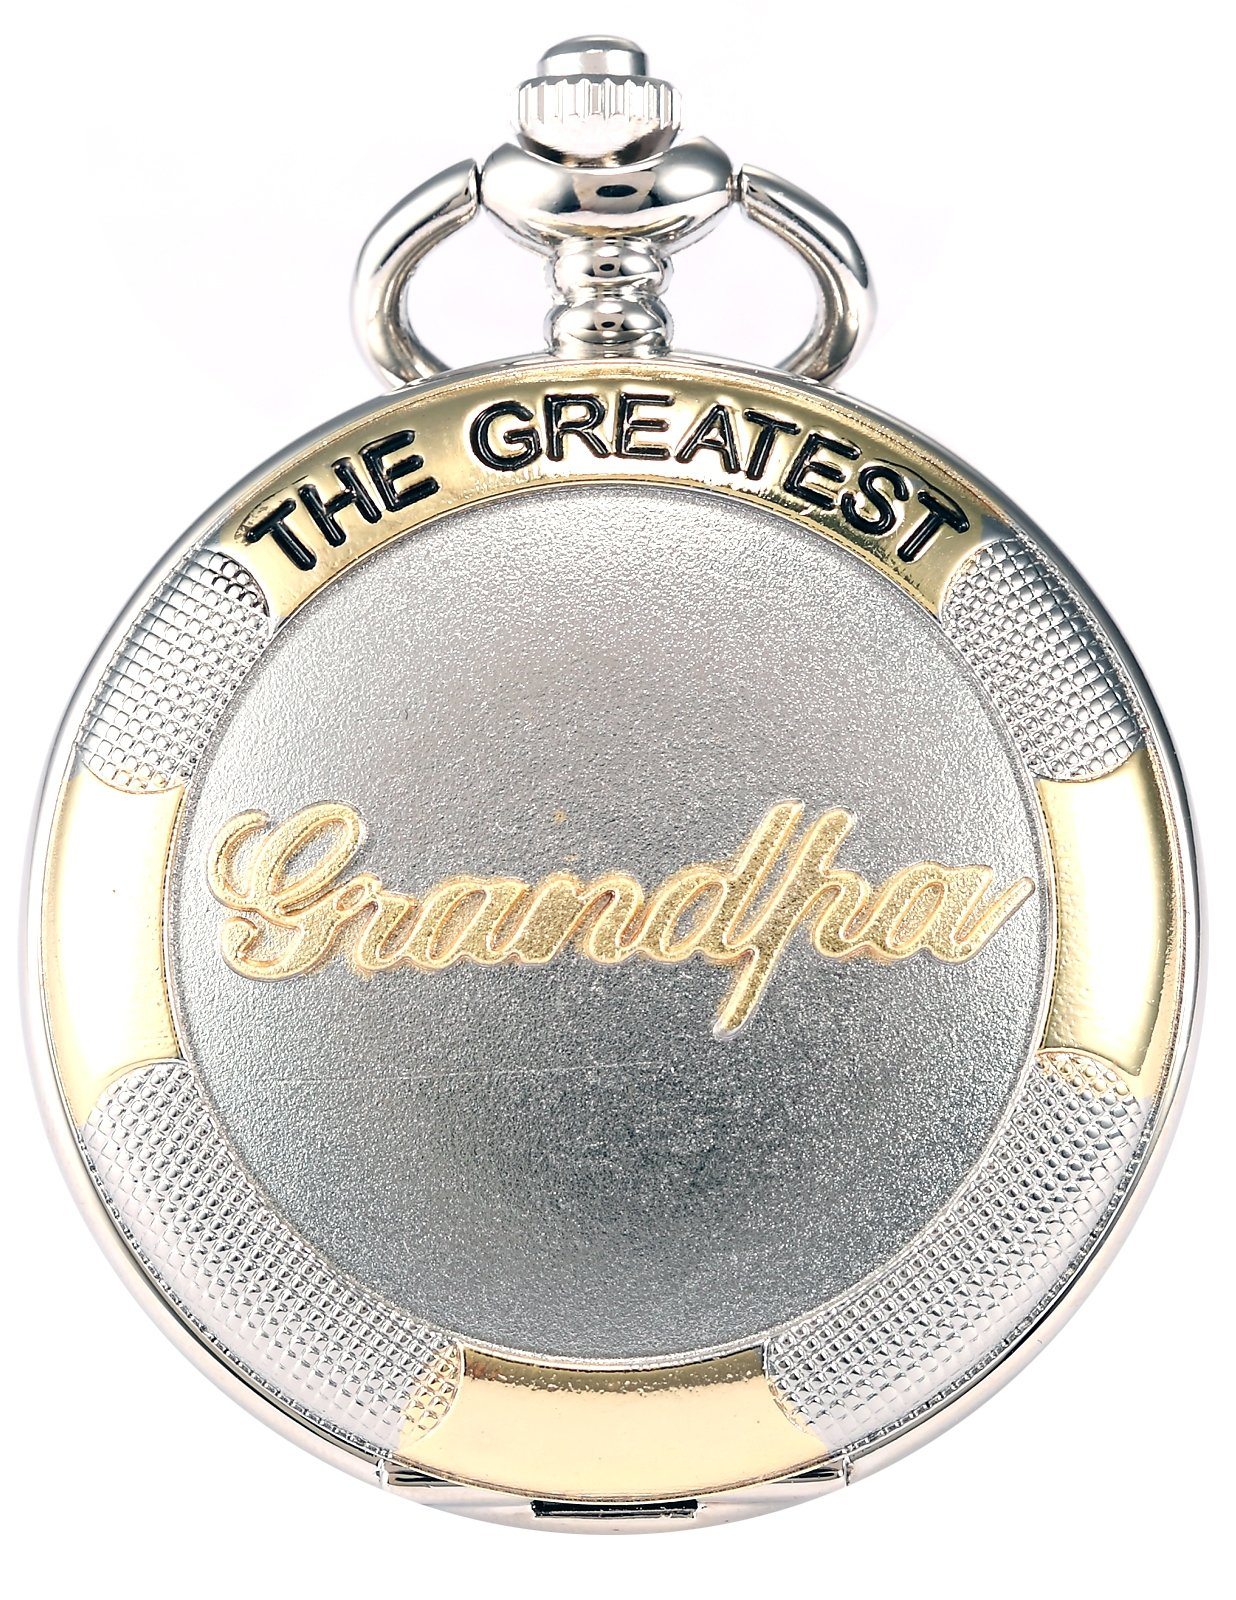 AMPM24 Silver Case Mens Pocket Watch, Silver Lid Cover Full Hunter Golden Grandpa Quartz Analog Rome Numeral Dial Men Pocket Watch with Chain Hook Fob, Gift for Father Dad